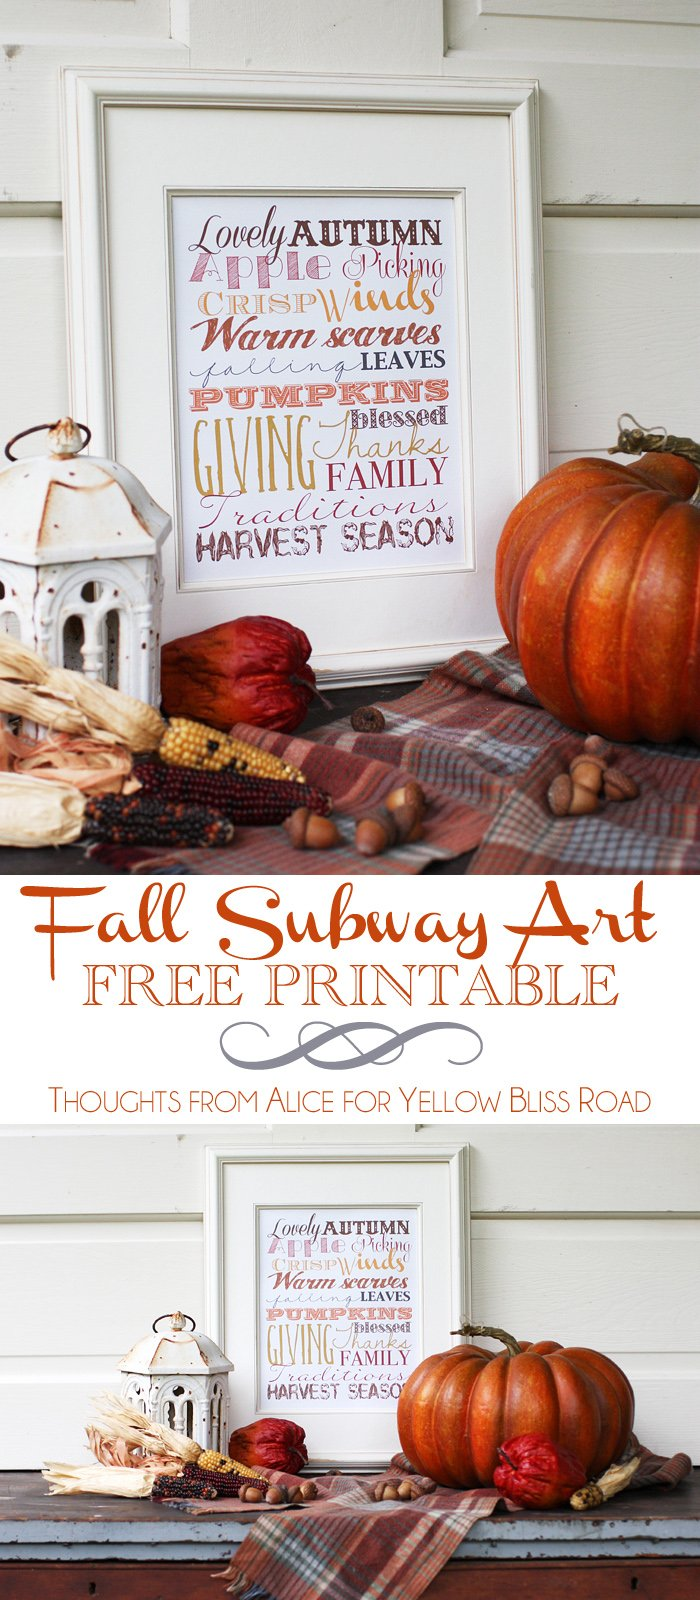 Fall-Subway-Art-Free-Printable